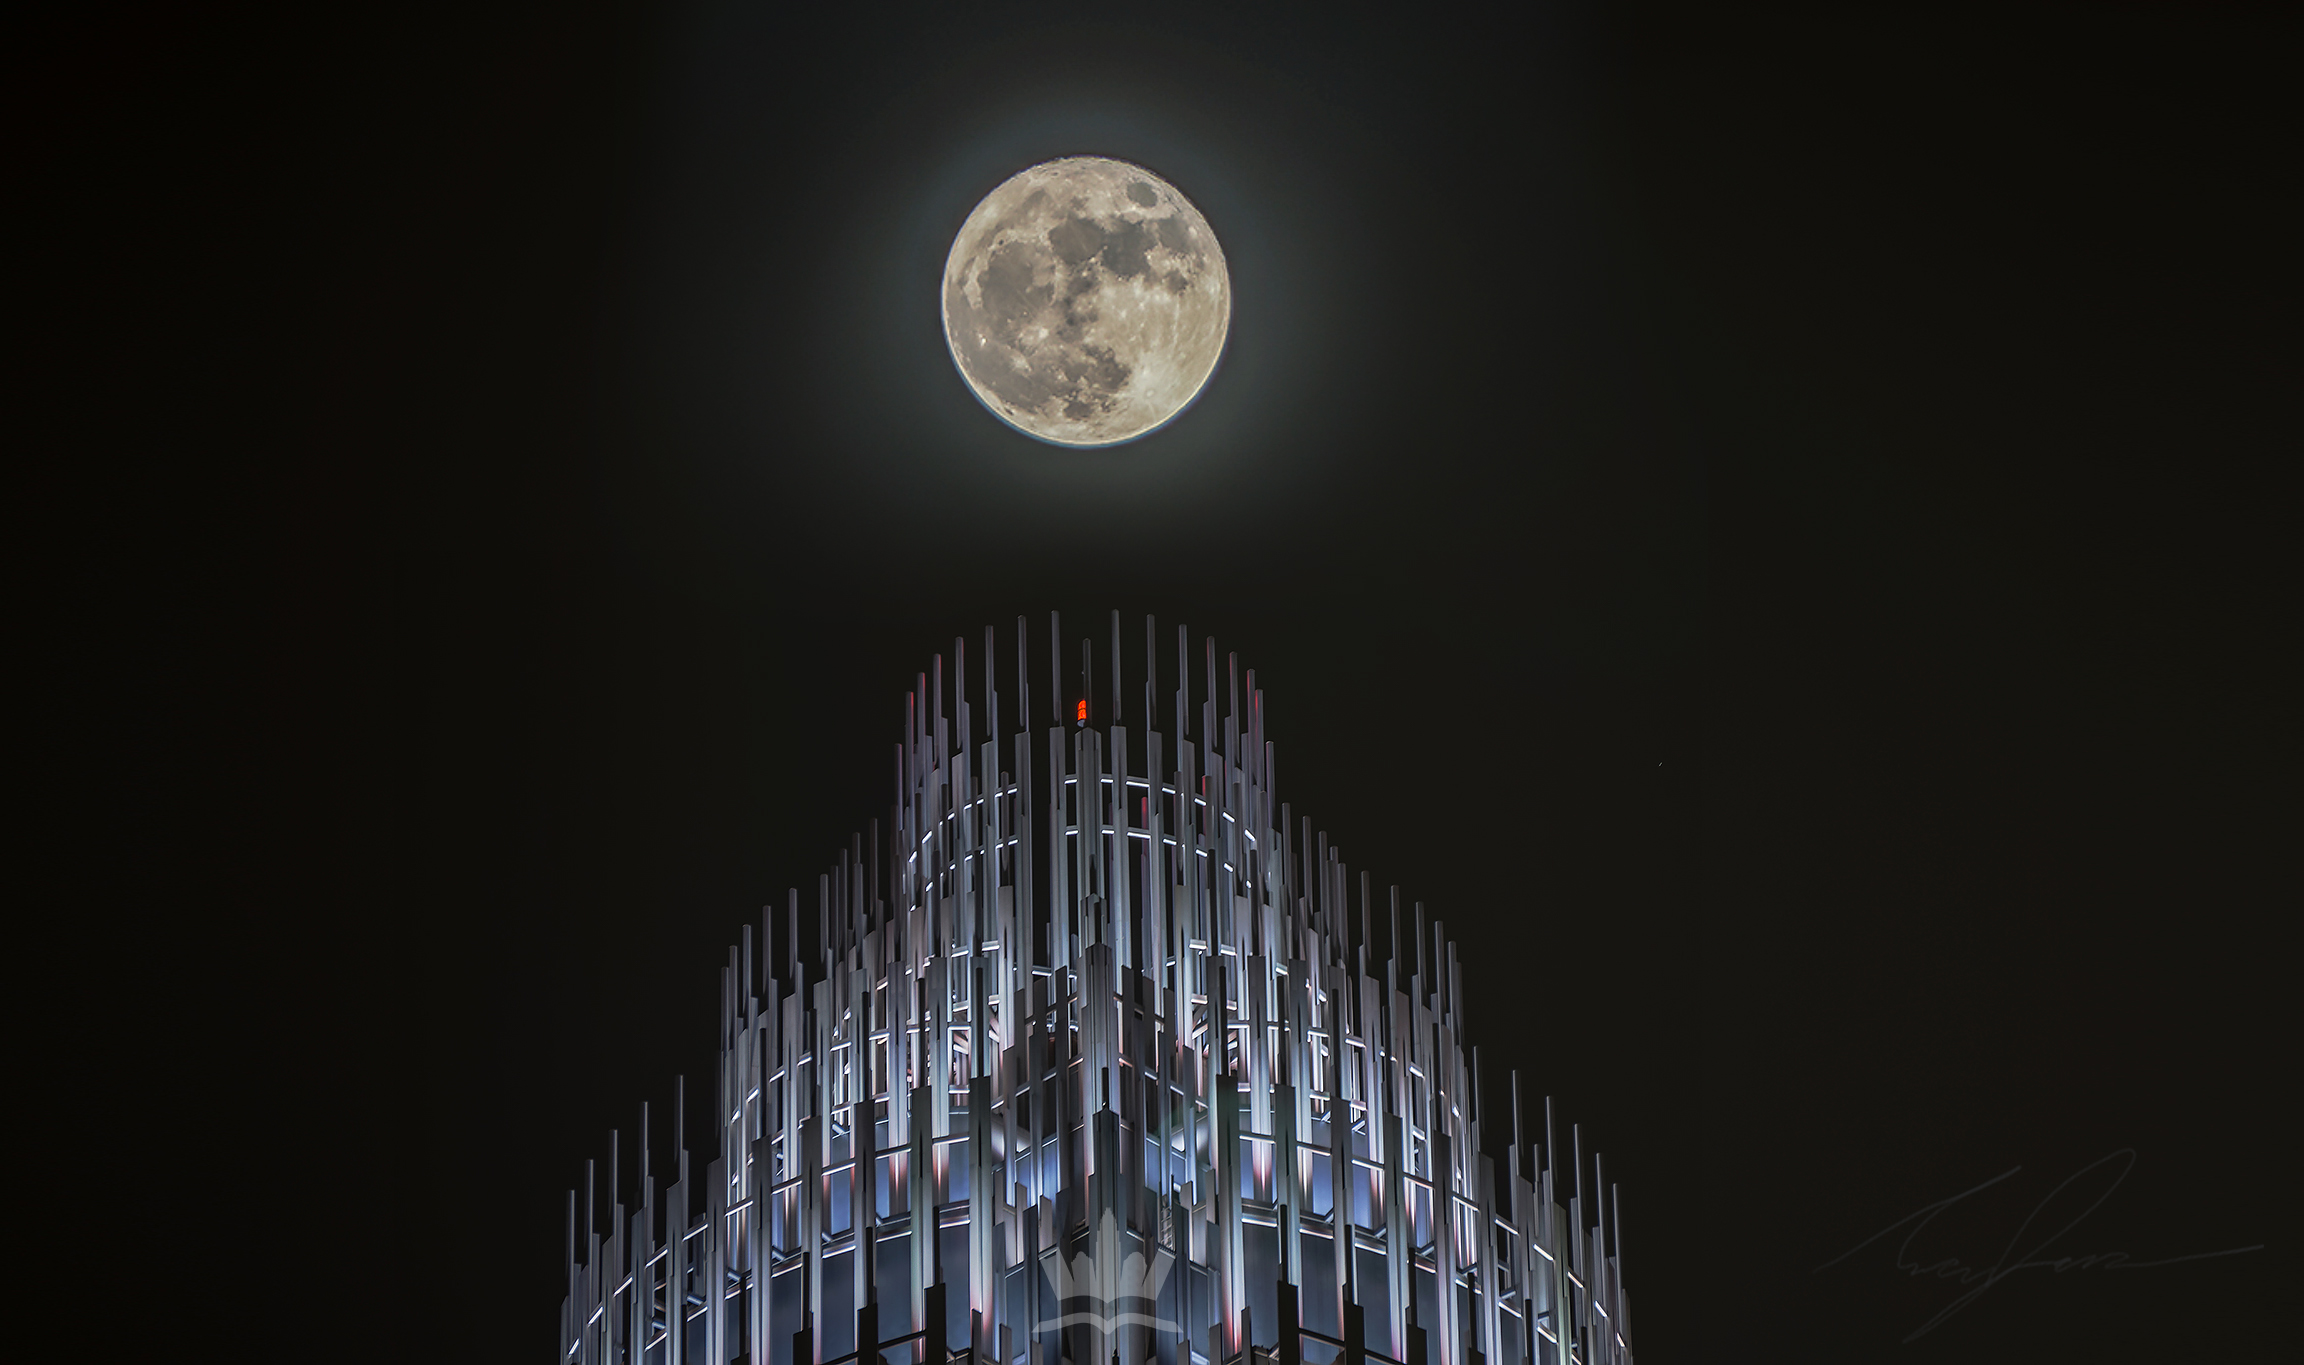 Final full moon of 2020 to appear in night sky this week